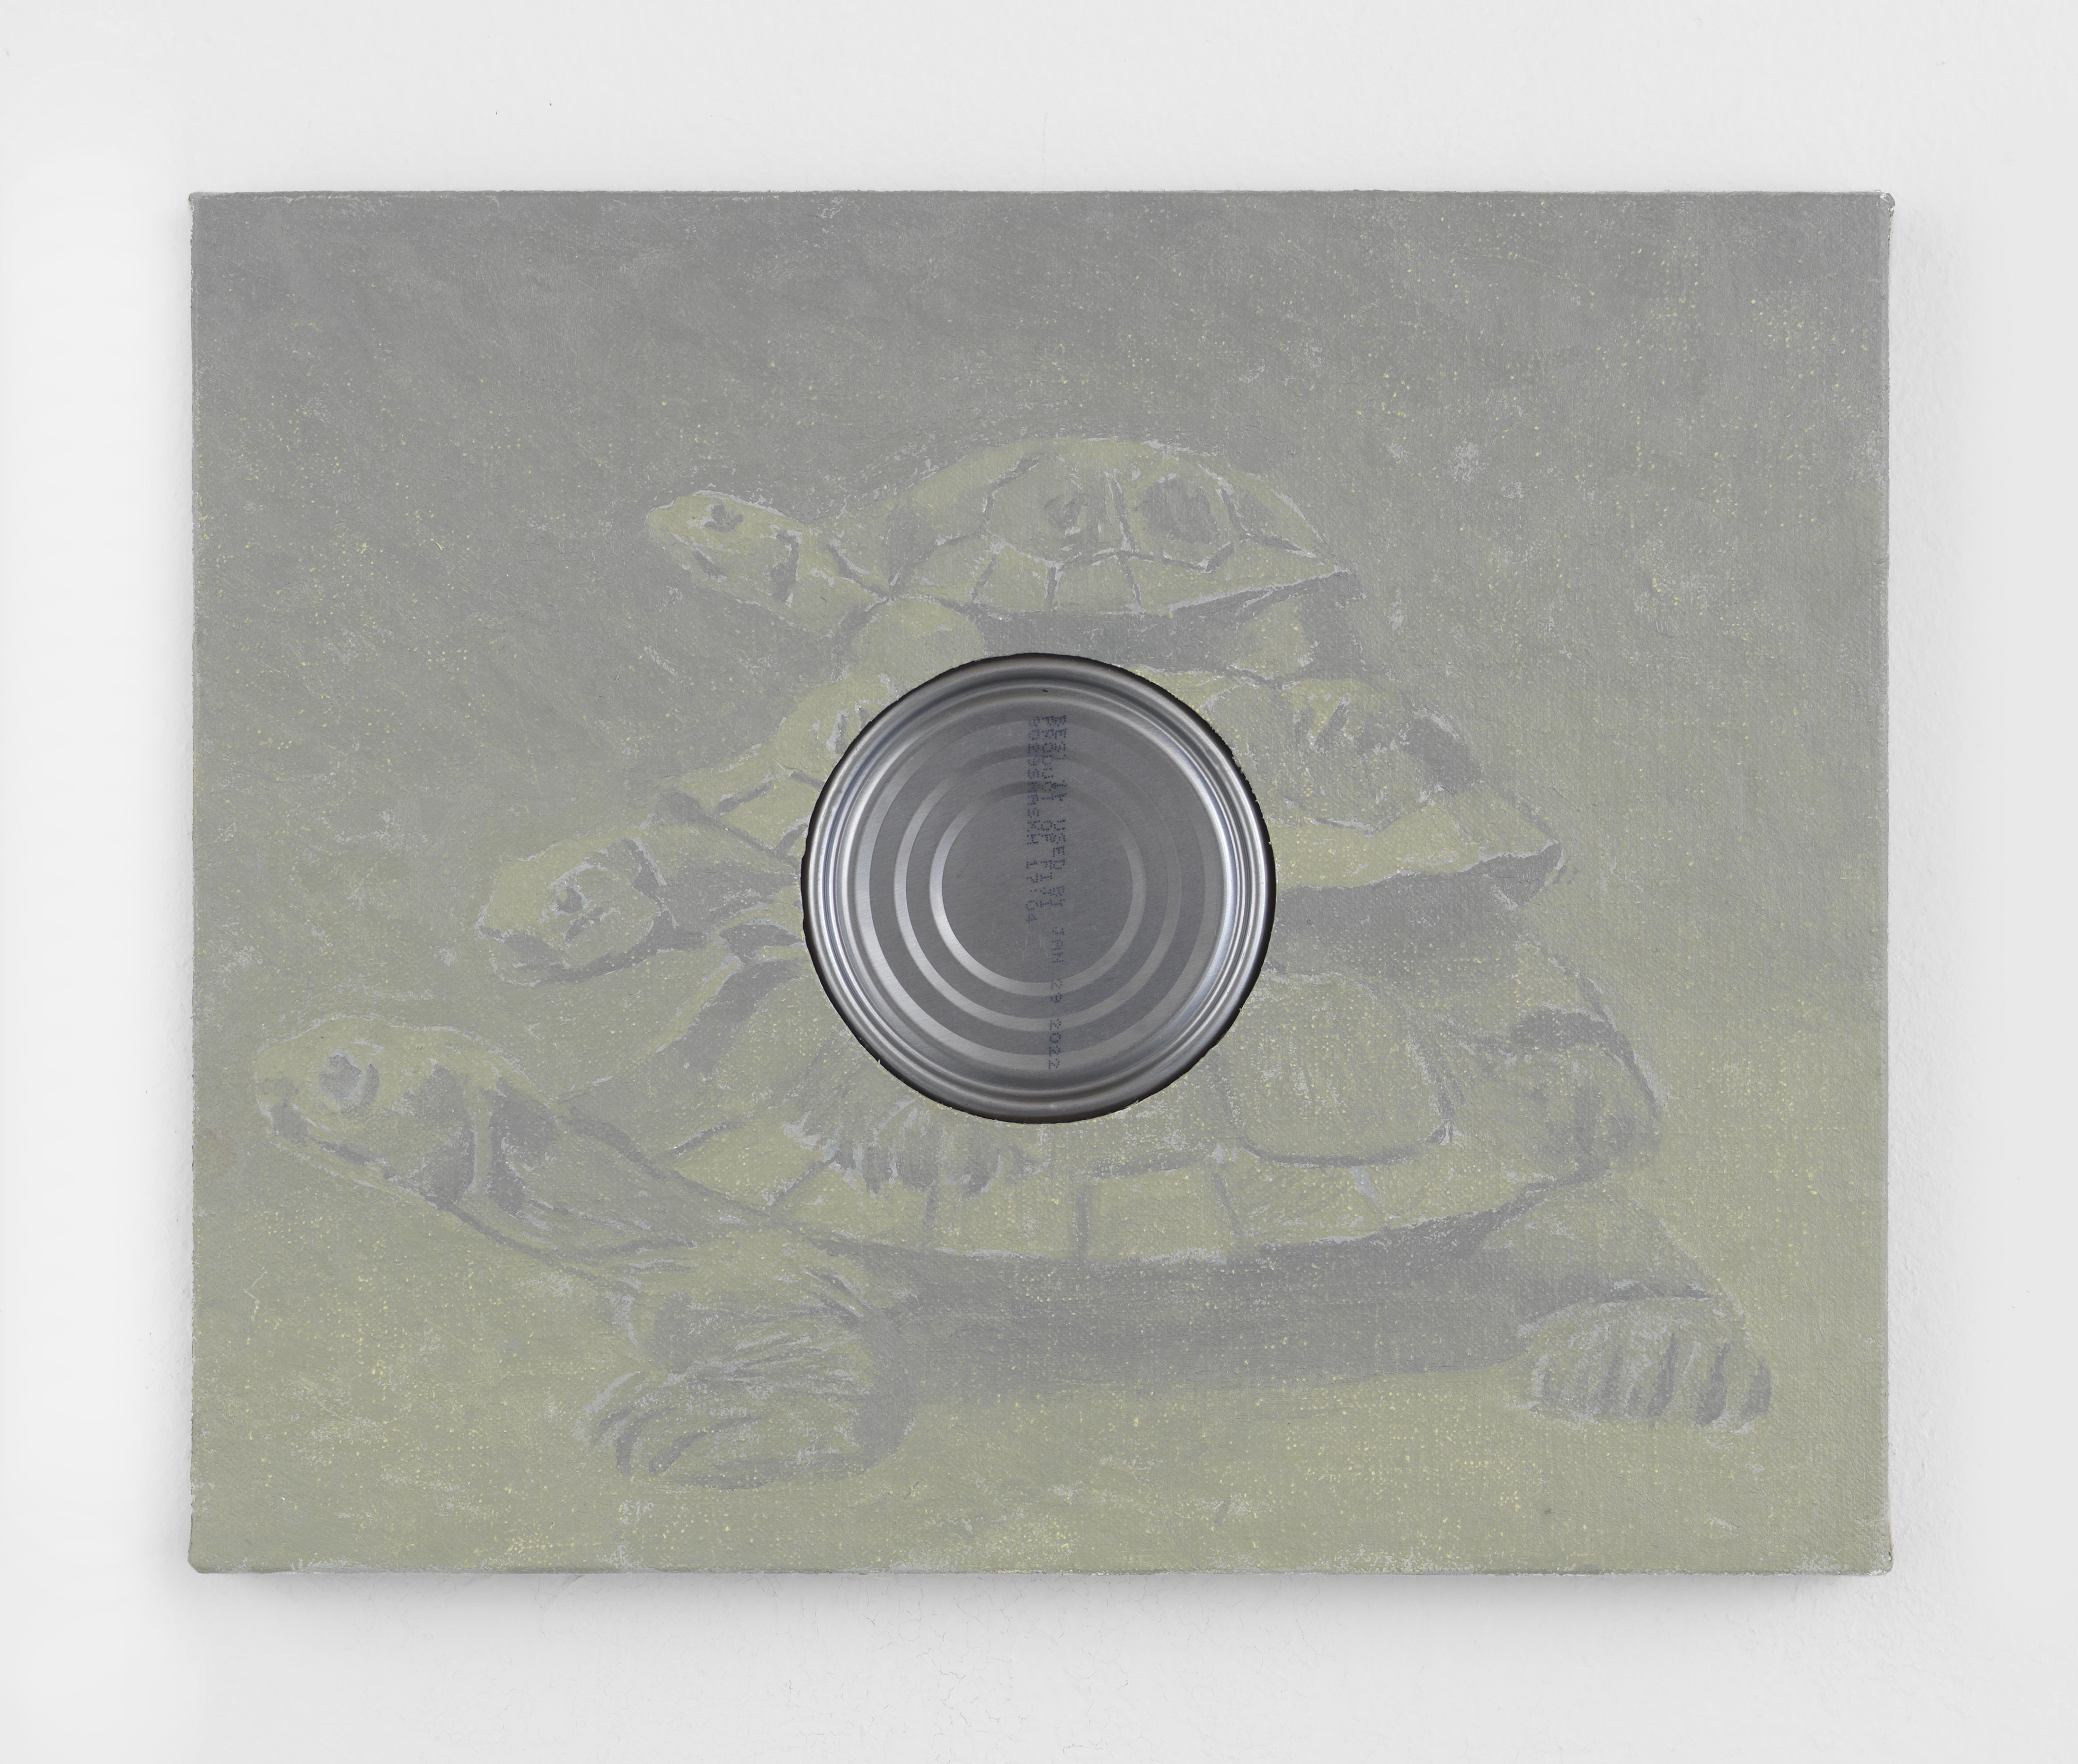 Alex Kwartler, Infinite regress (with tuna), 2021, Oil on linen with tin can, 10h x 12w in.